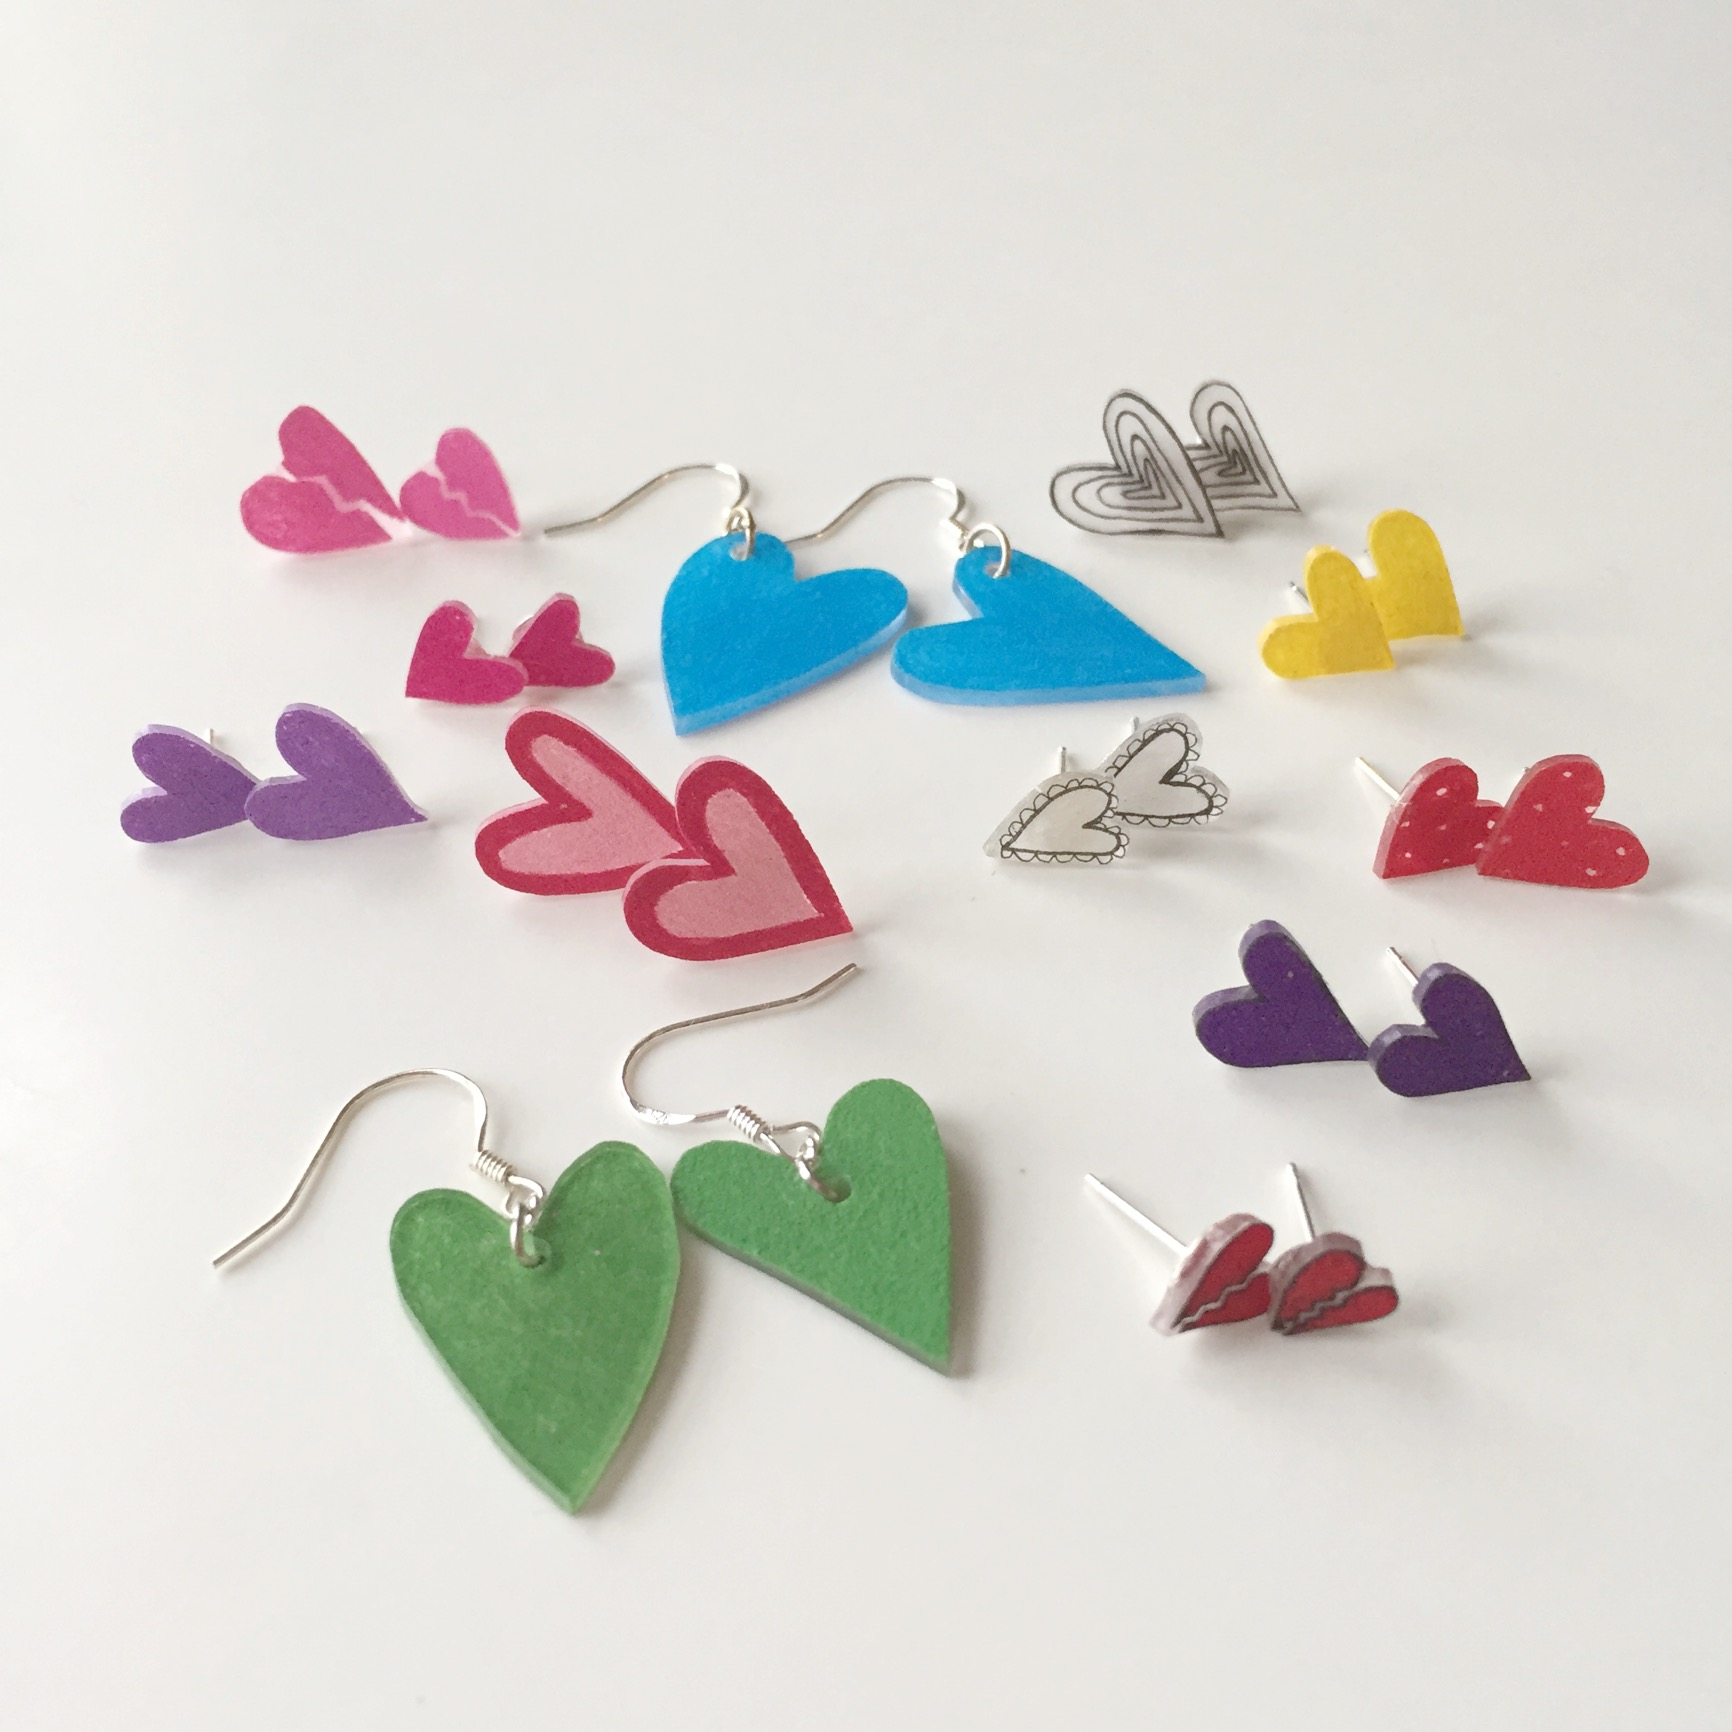 How to Make Heart Earrings Rainbow Heart Earrings by Pop Shop America